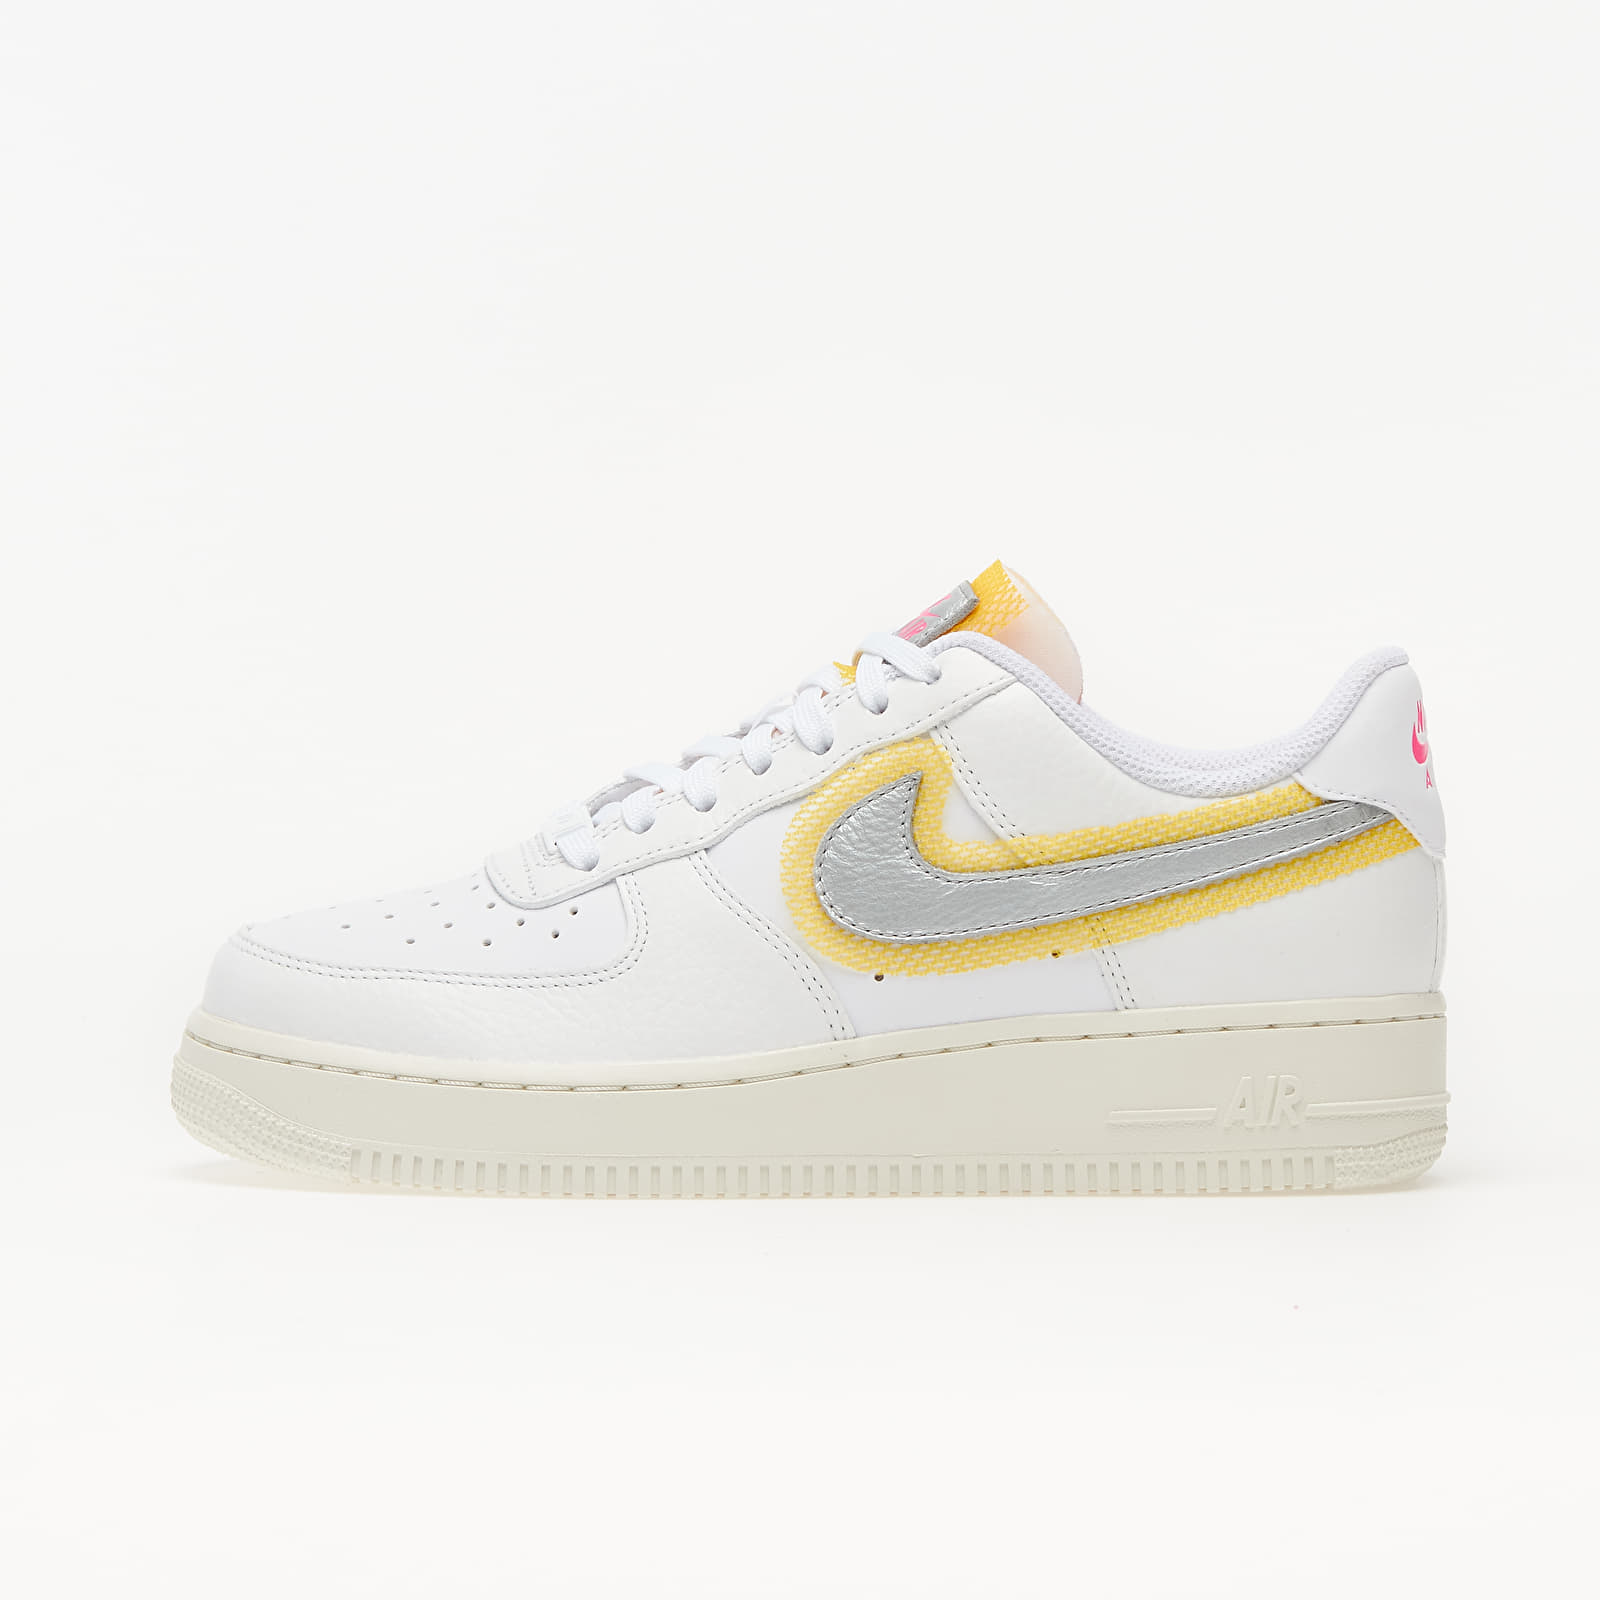 Nike Air Force 1 '07 White/ Metallic Silver-University Gold EUR 36